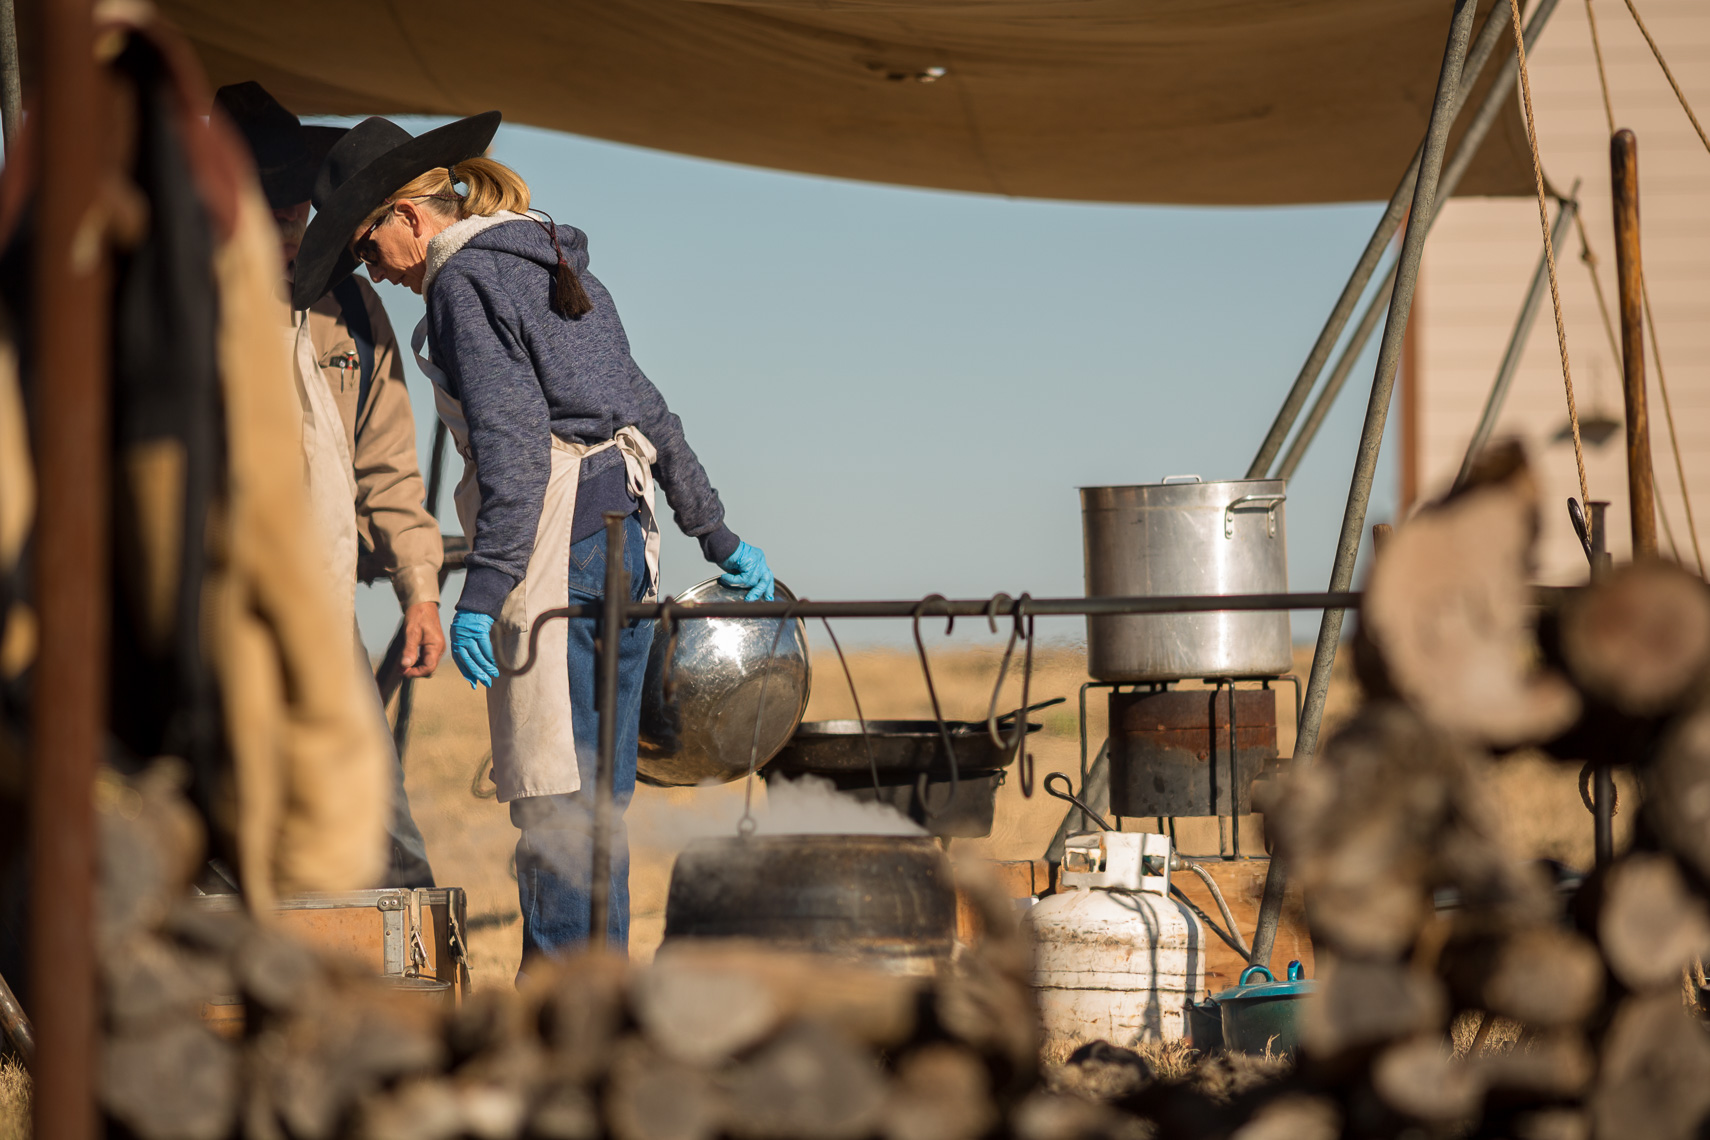 Chuck-Wagon-Food-Cooking-South-Texas-Ranch-Jason-Risner-Photographt-9327